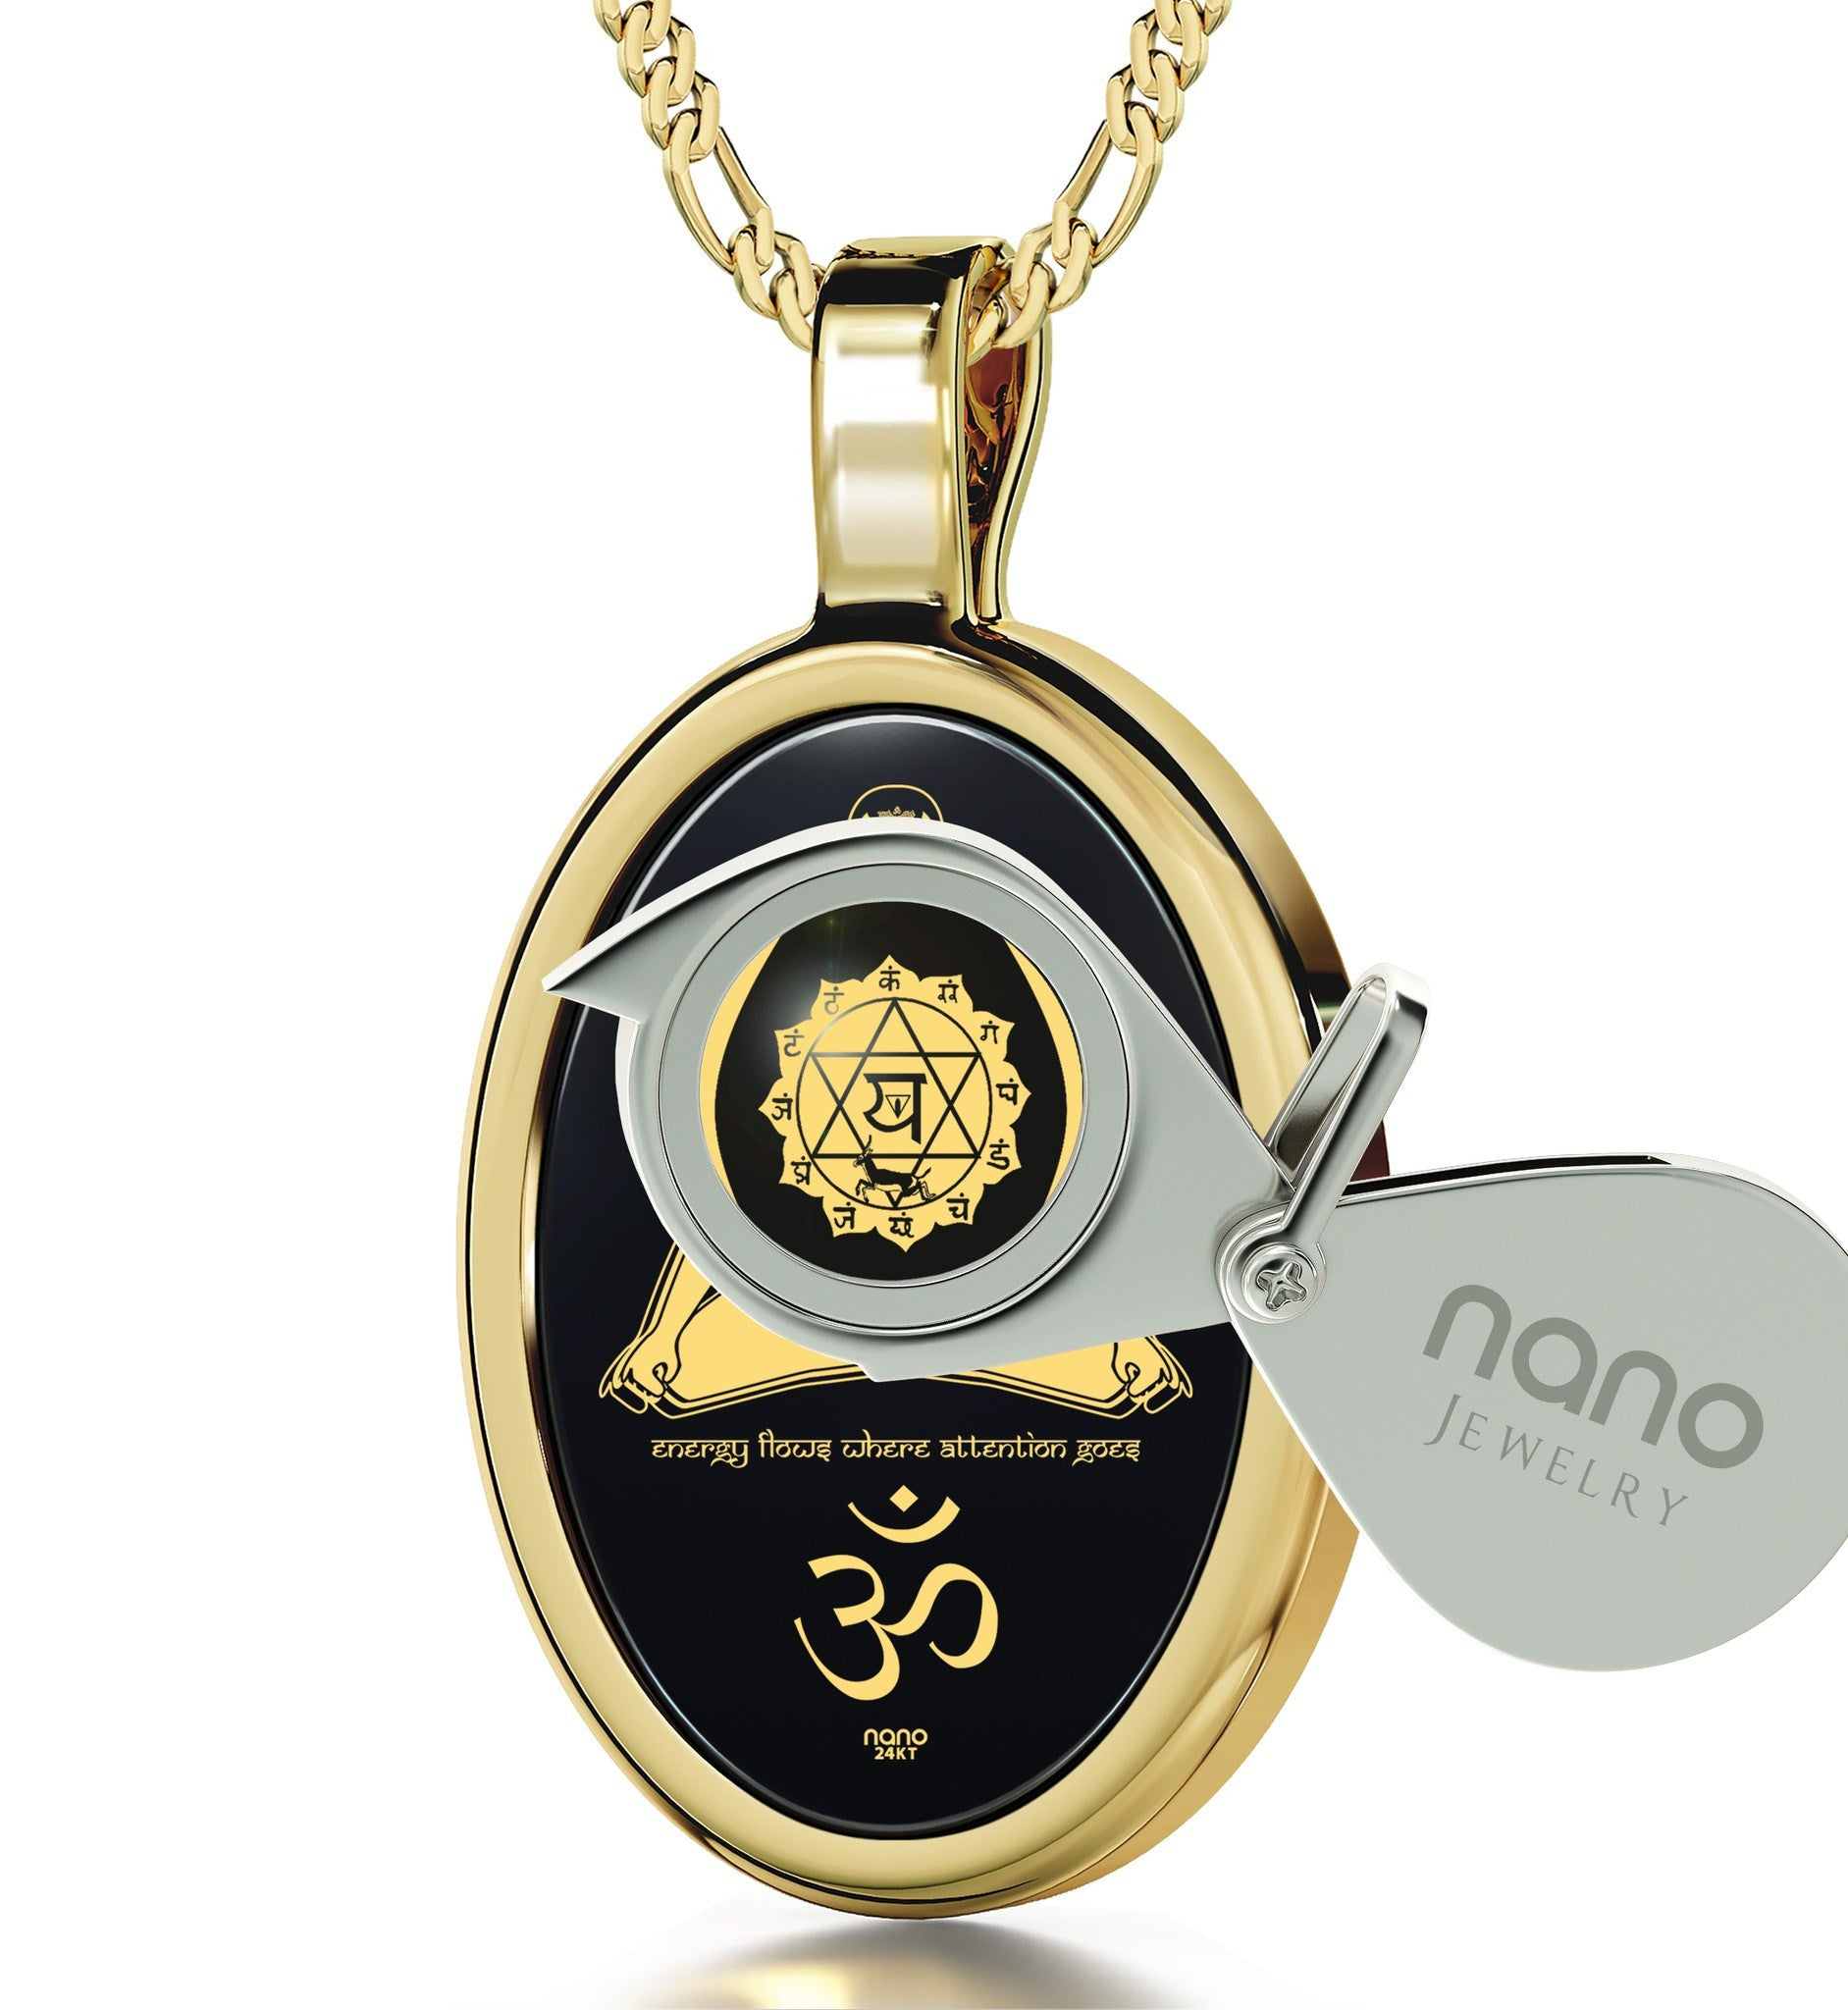 """Energy Flows Where Attention Goes"" Engraved in 24k: Mens Gifts for Birthday, Christmas Gifts for Sister, Chakra Necklace, Nano Jewelry"